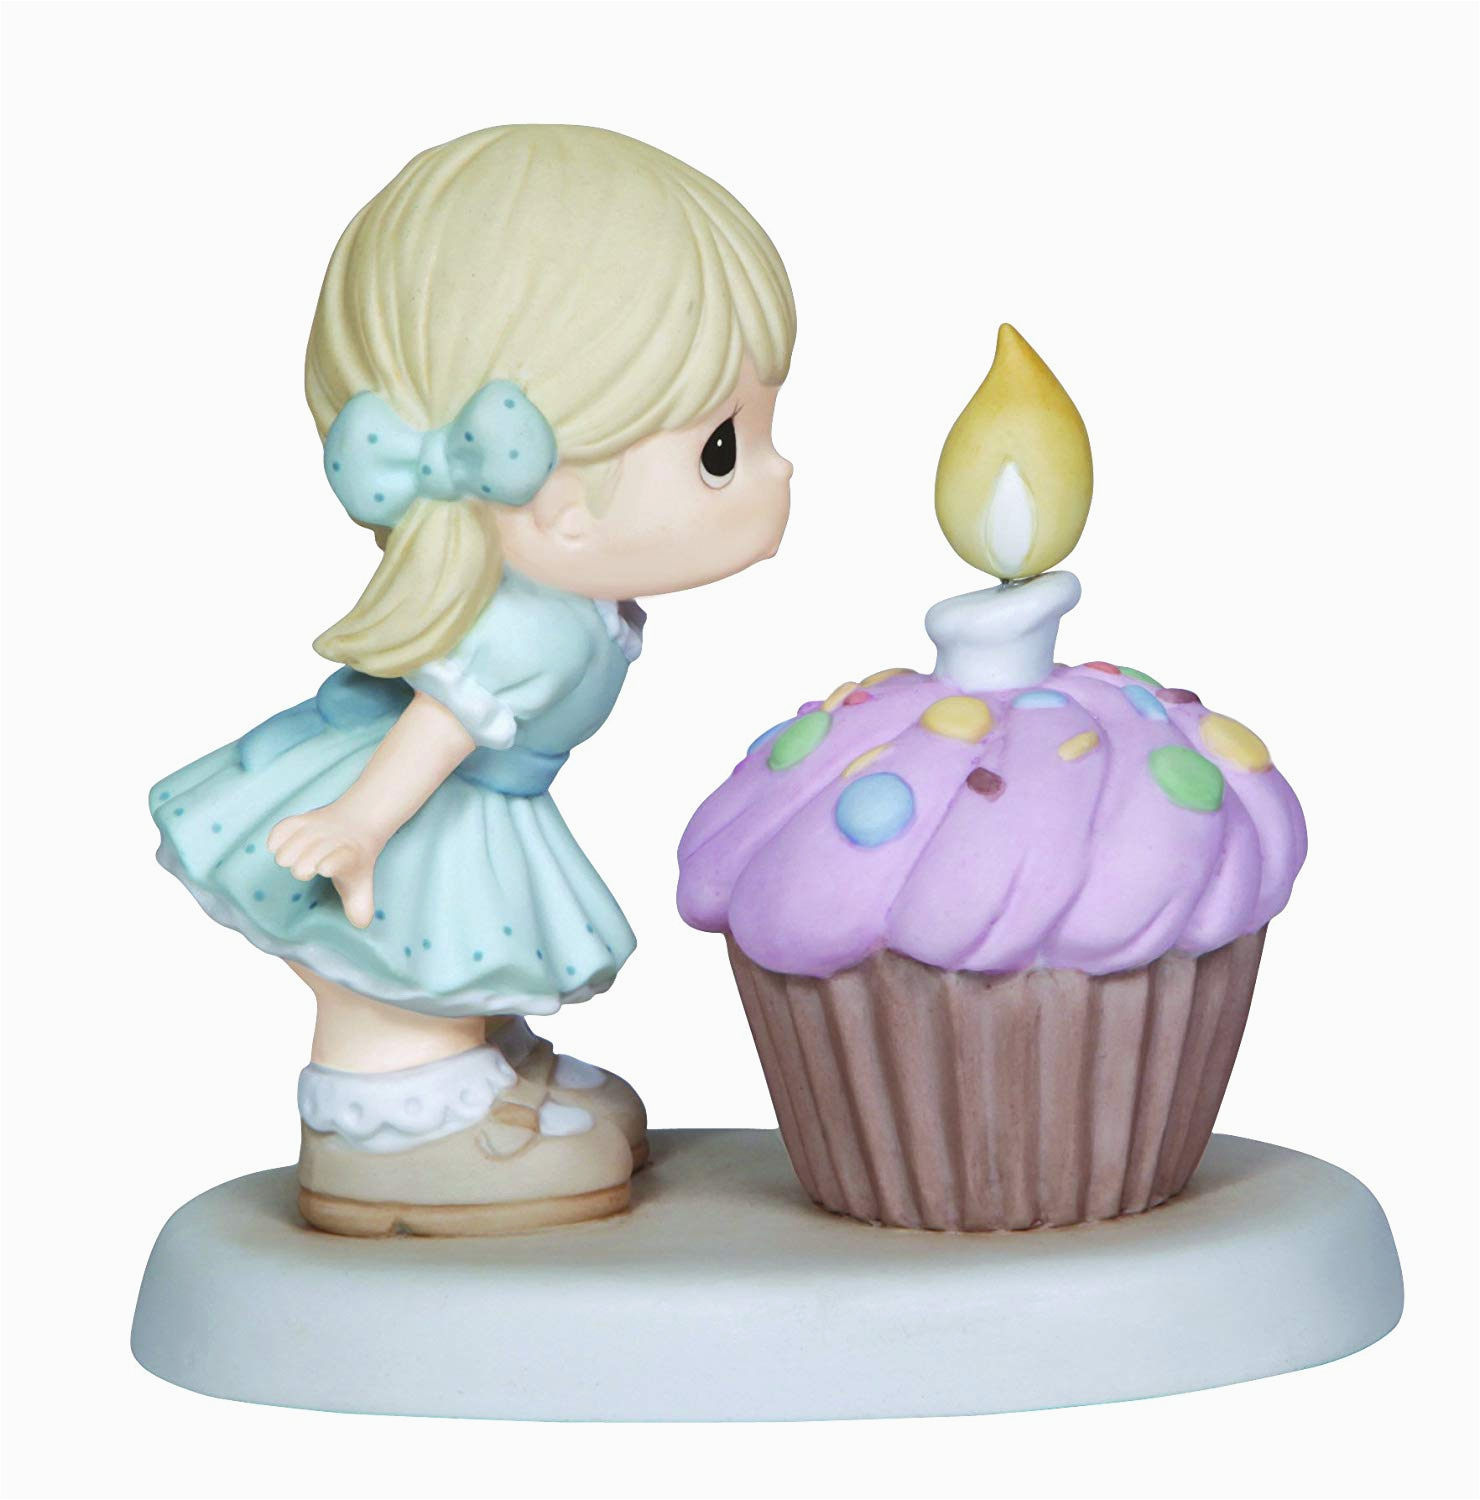 cupcake figurine collectibles